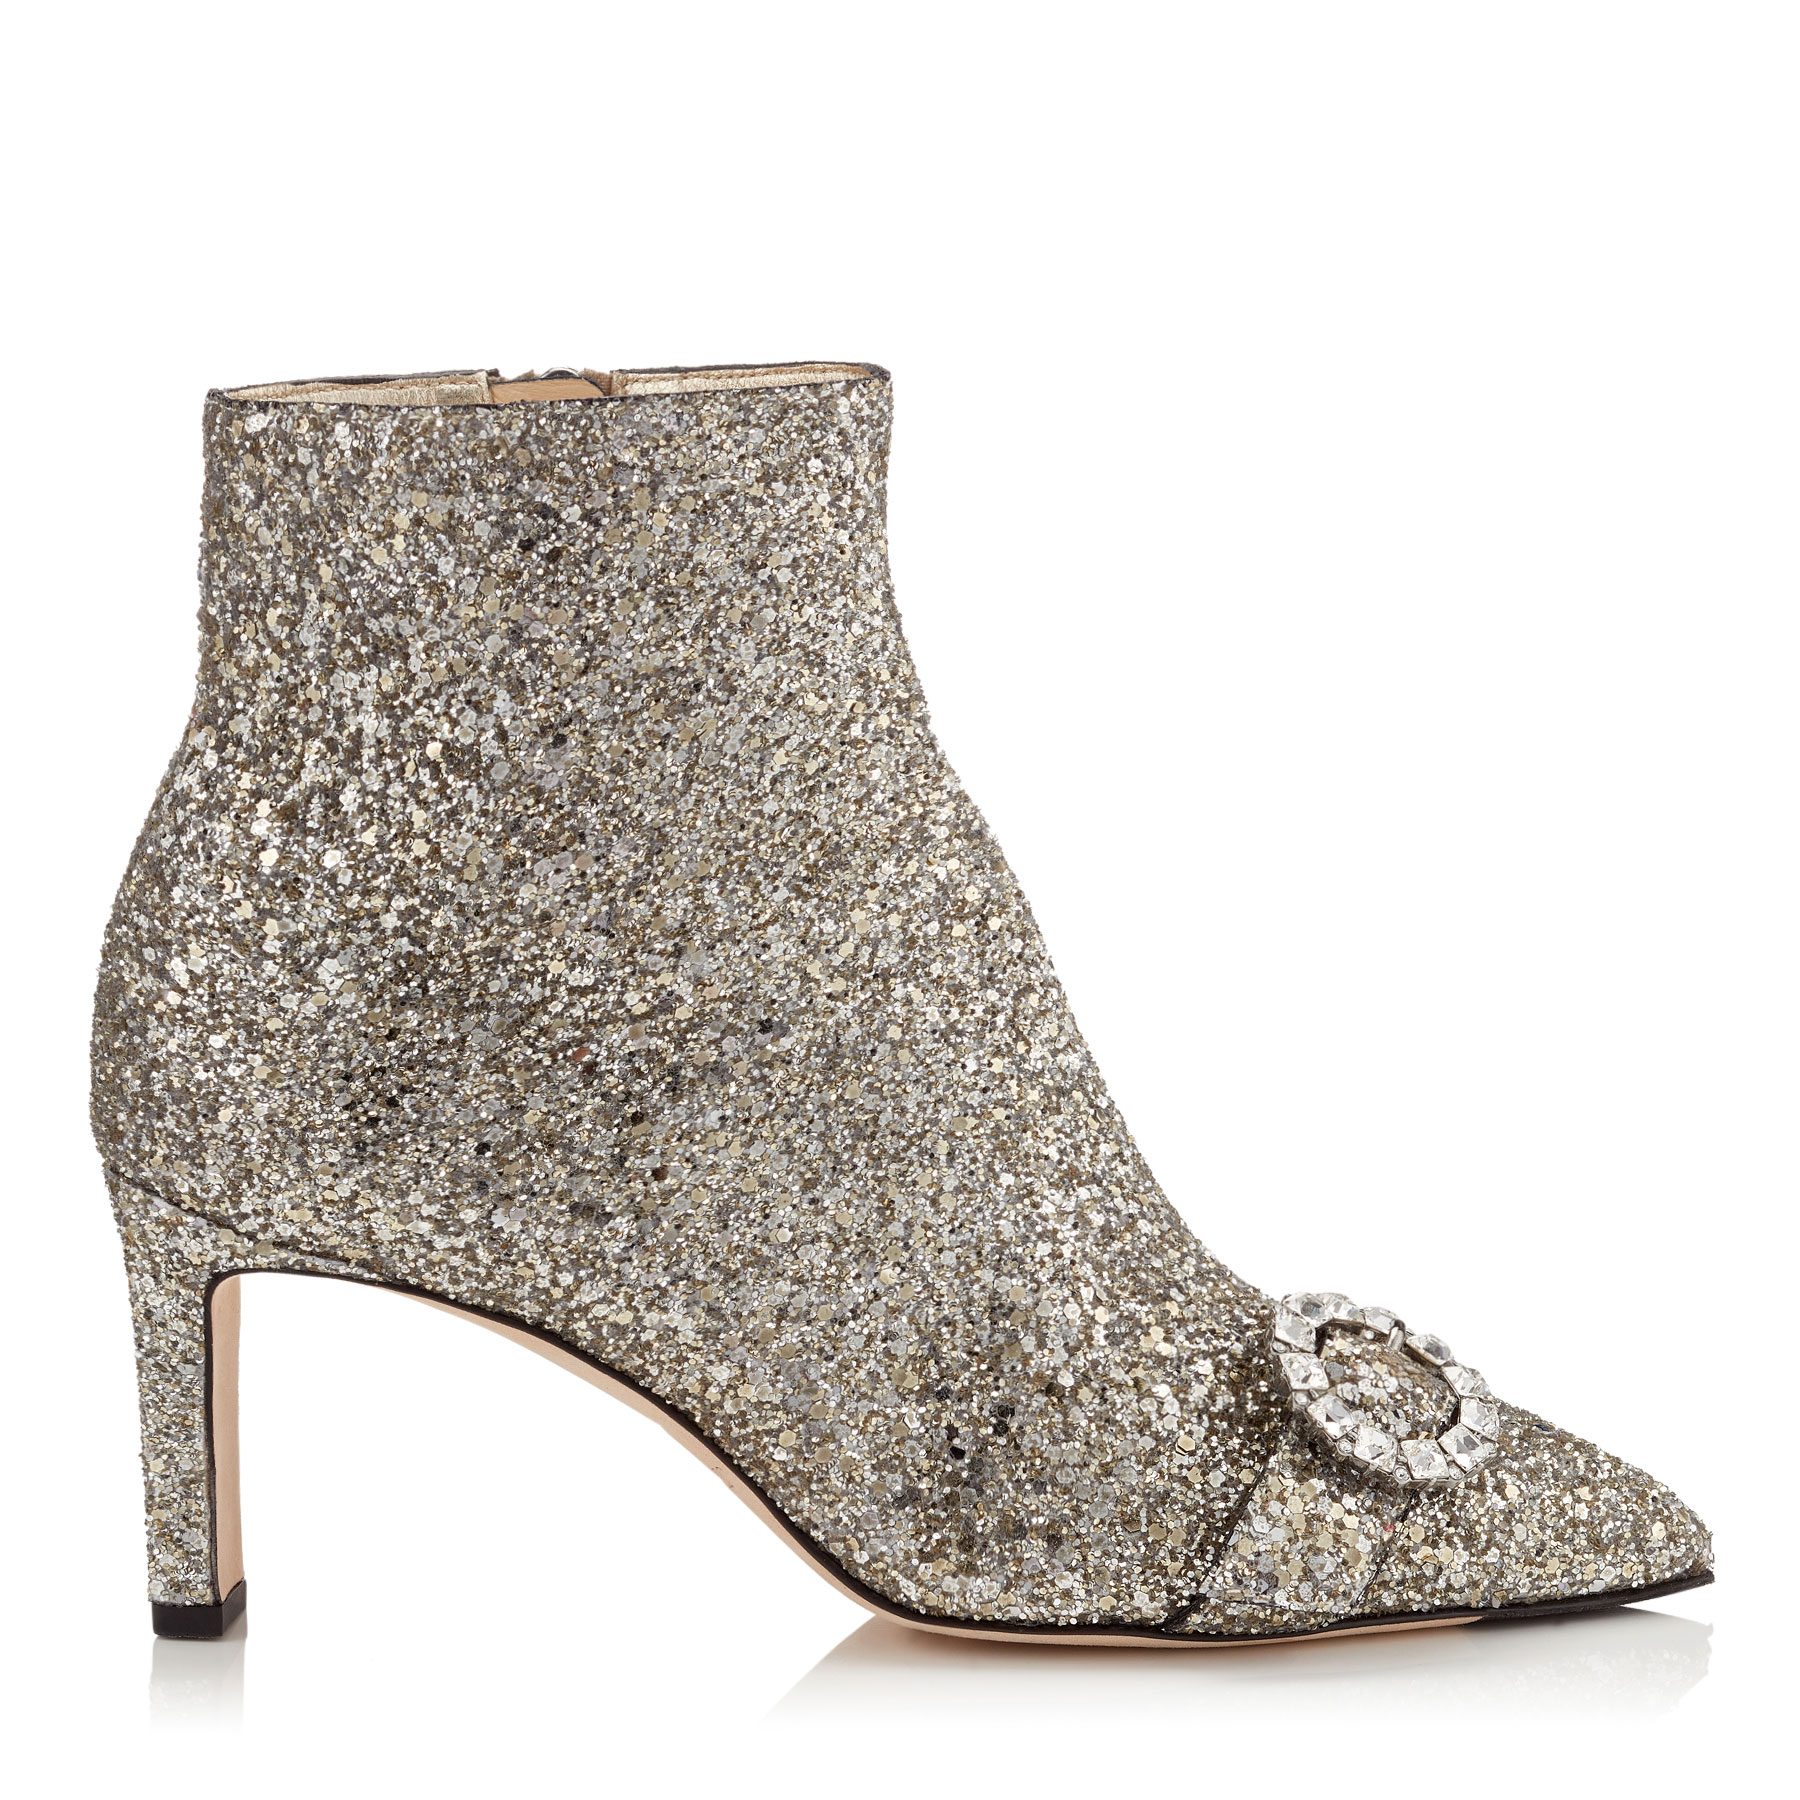 HANOVER 65 Chai Shadow Coarse Glitter Fabric Booties with Crystal Buckle by Jimmy Choo